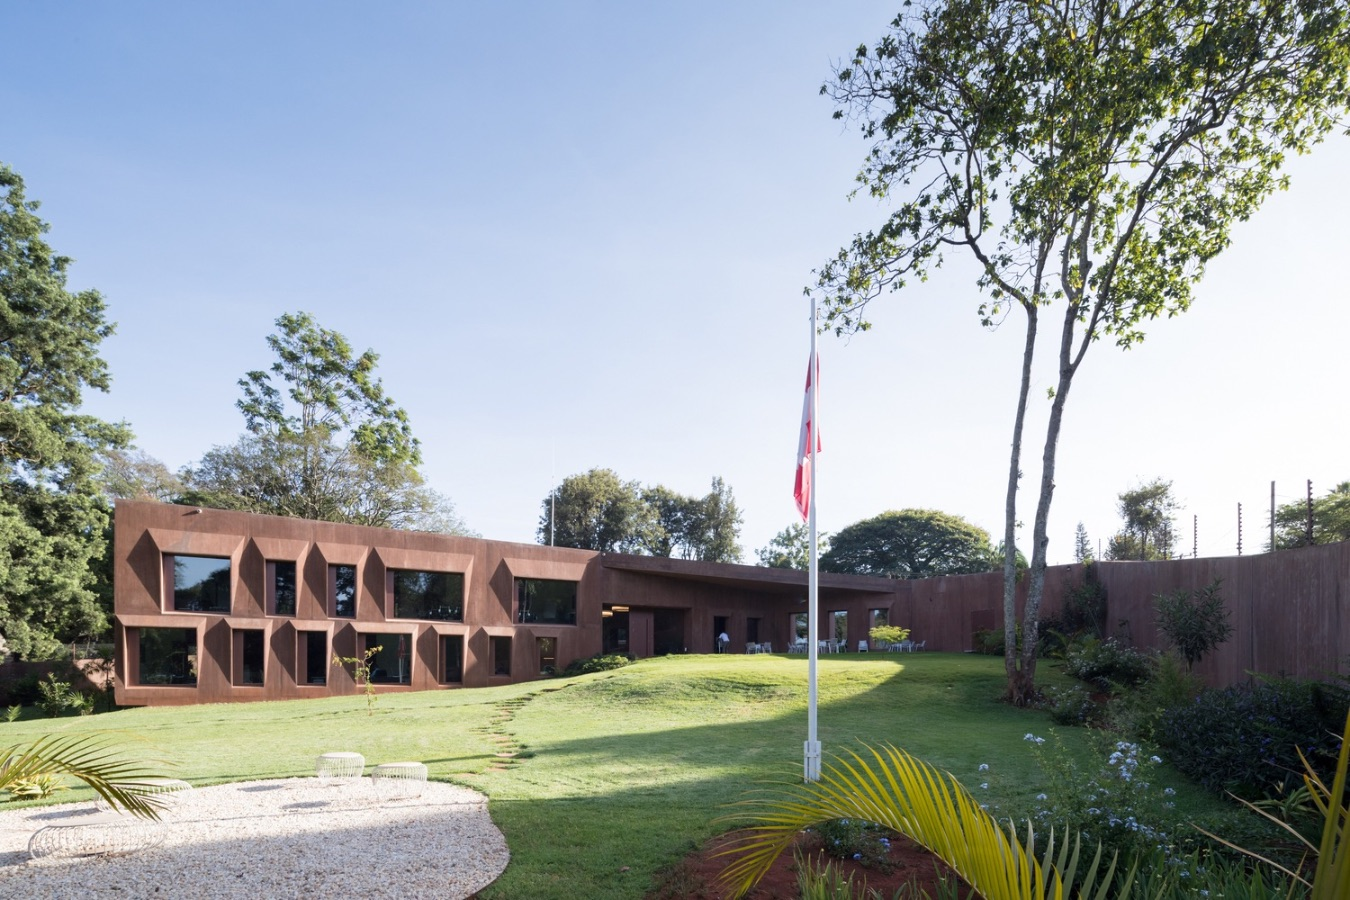 8_Swiss Embassy in Nairobi_ro.ma. architekten_Inspirationist